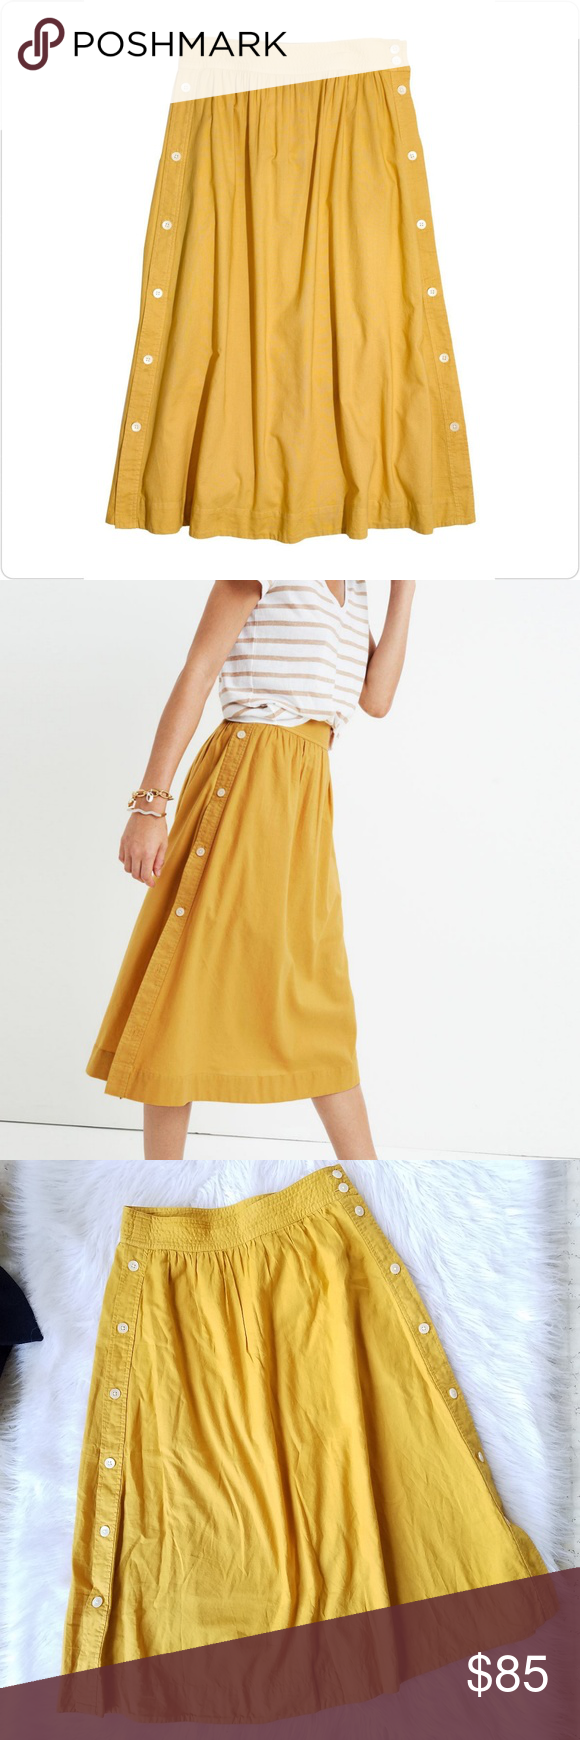 04efea369 Madewell Side Button Skirt Madewell. Women's 2. Side Button Skirt. Color:  Cumin / Yellow. Midi length. Buttons down each side. 100% Cotton.